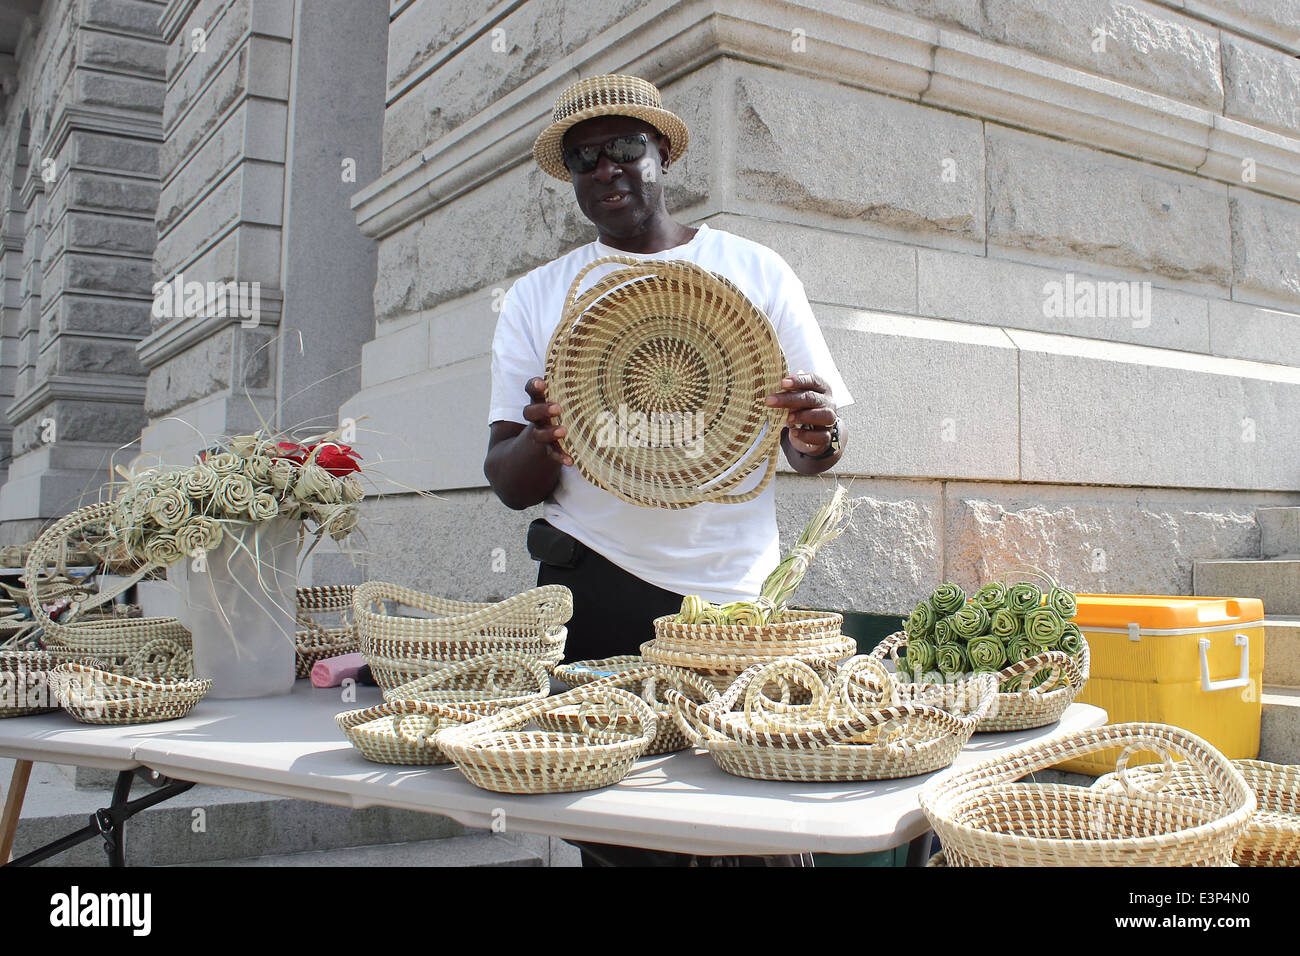 A Sweetgrass basket maker shows off his creations on Meeting street in Charleston, South Carolina, USA. - Stock Image